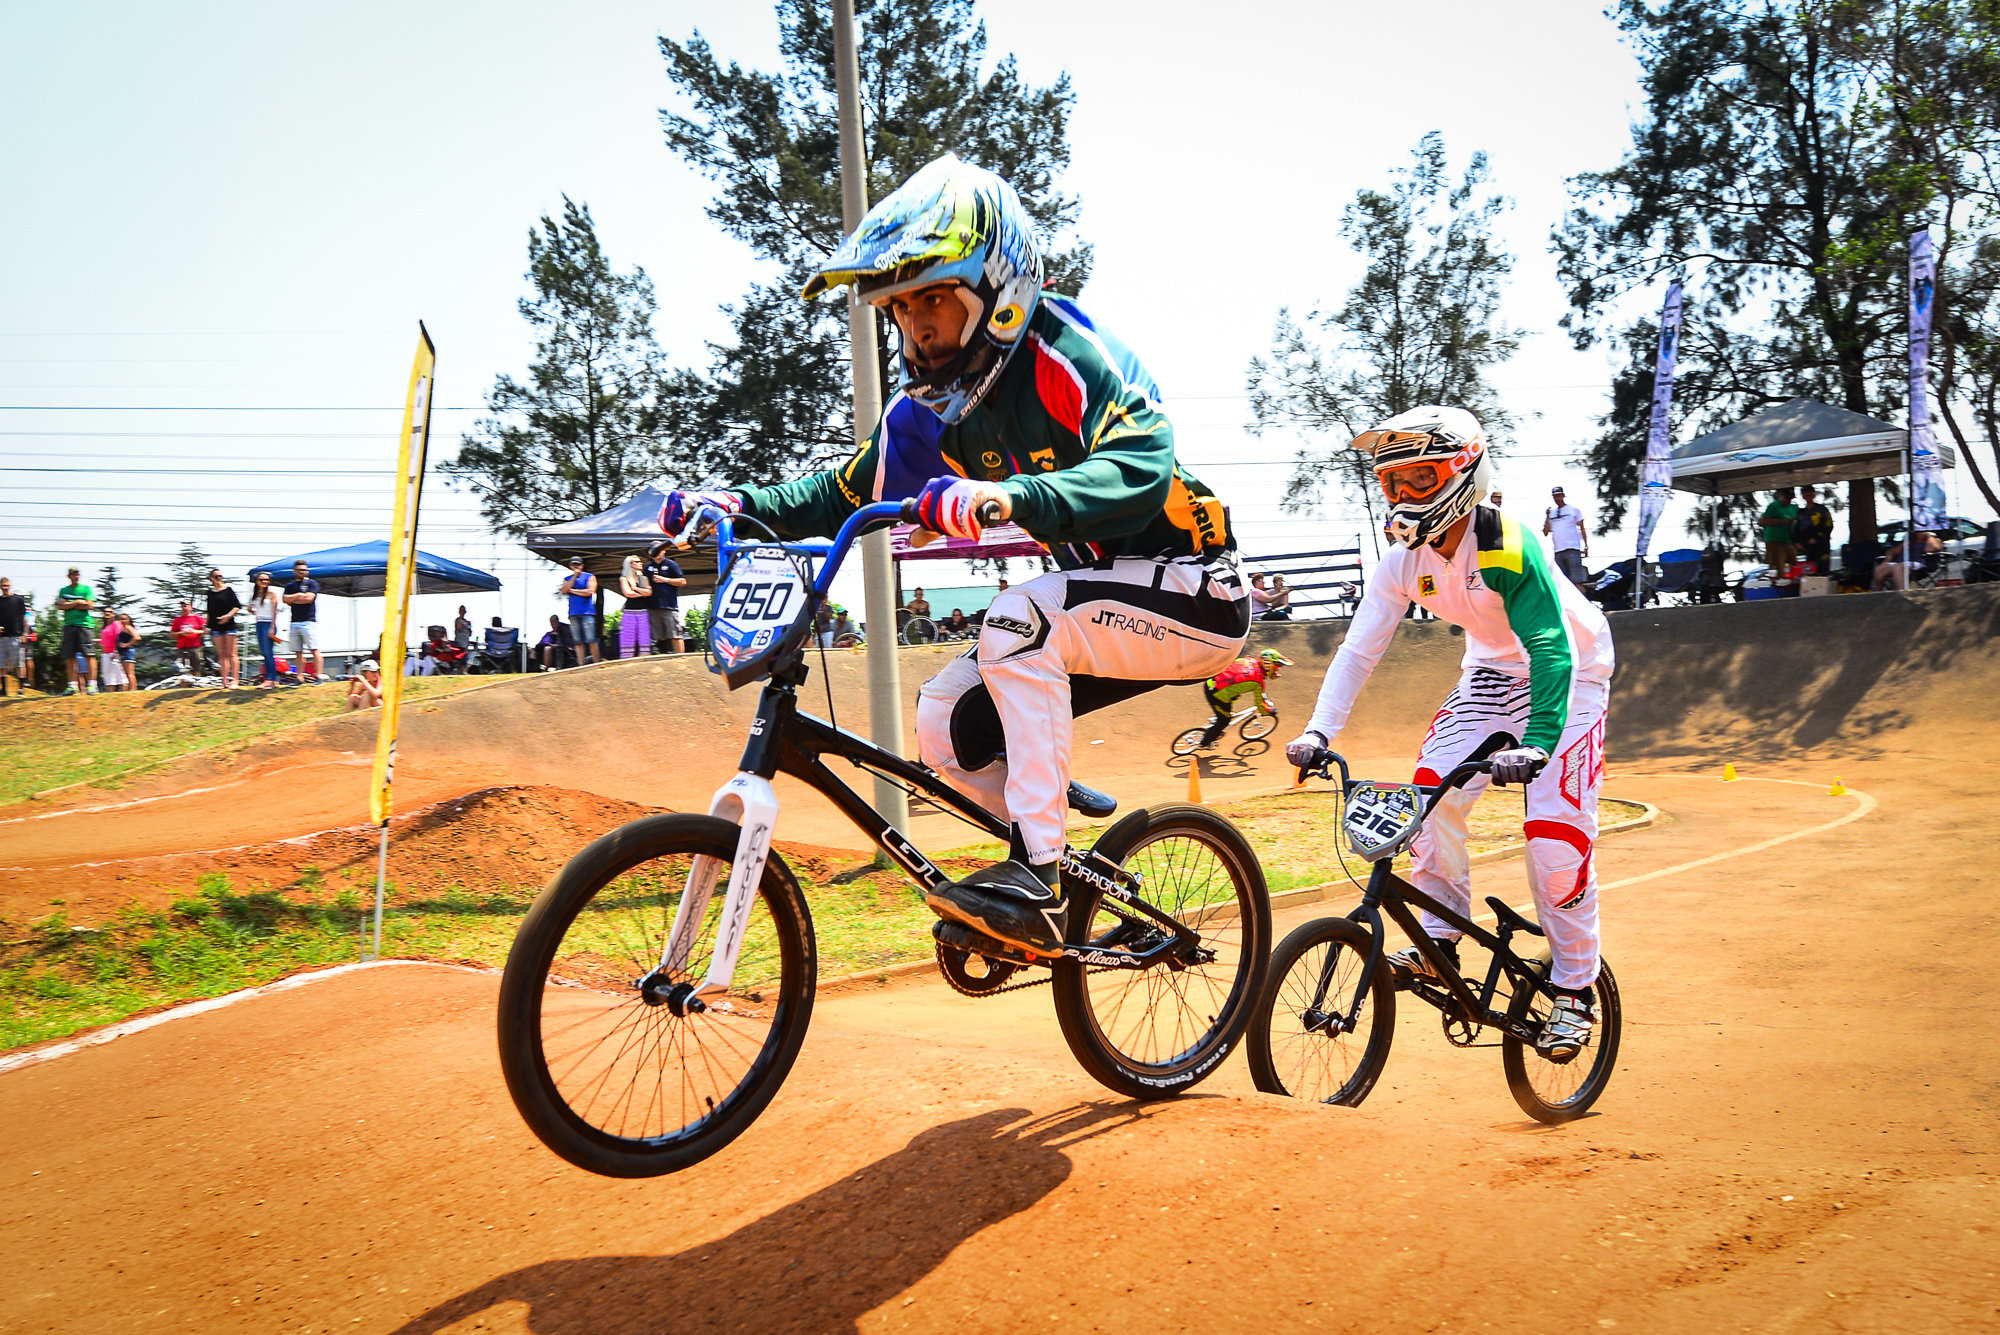 Team Faith Rockstar rider, Alex Limberg looks forward to the action that is African Continental BMX Championships, taking place at Giba Gorge Park on Sunday 2 October. Photo: Cycling SA